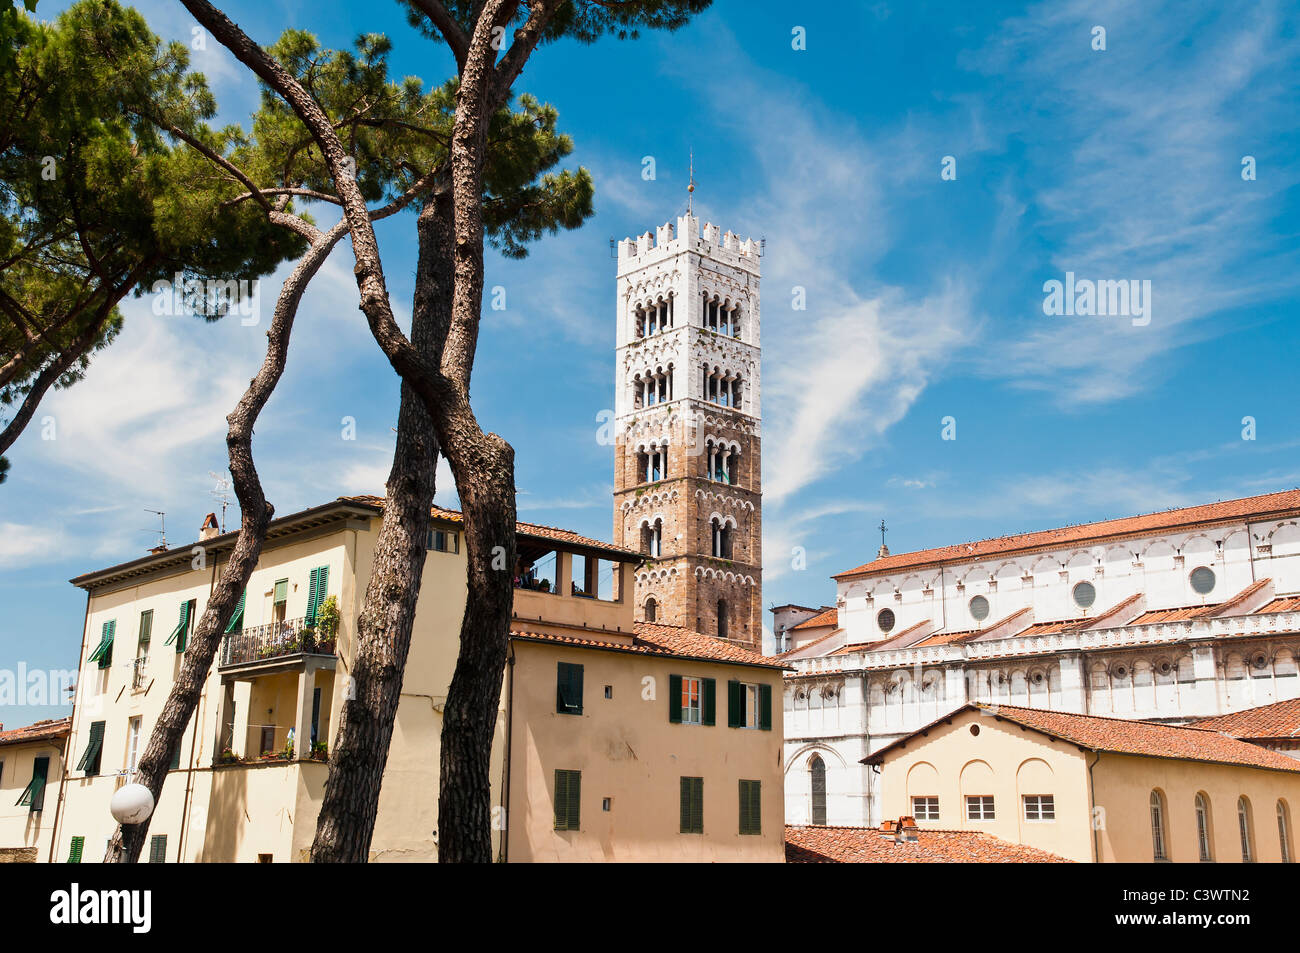 The medieval bell tower of St Martin cathedral, Lucca, Tuscany, Italy - Stock Image